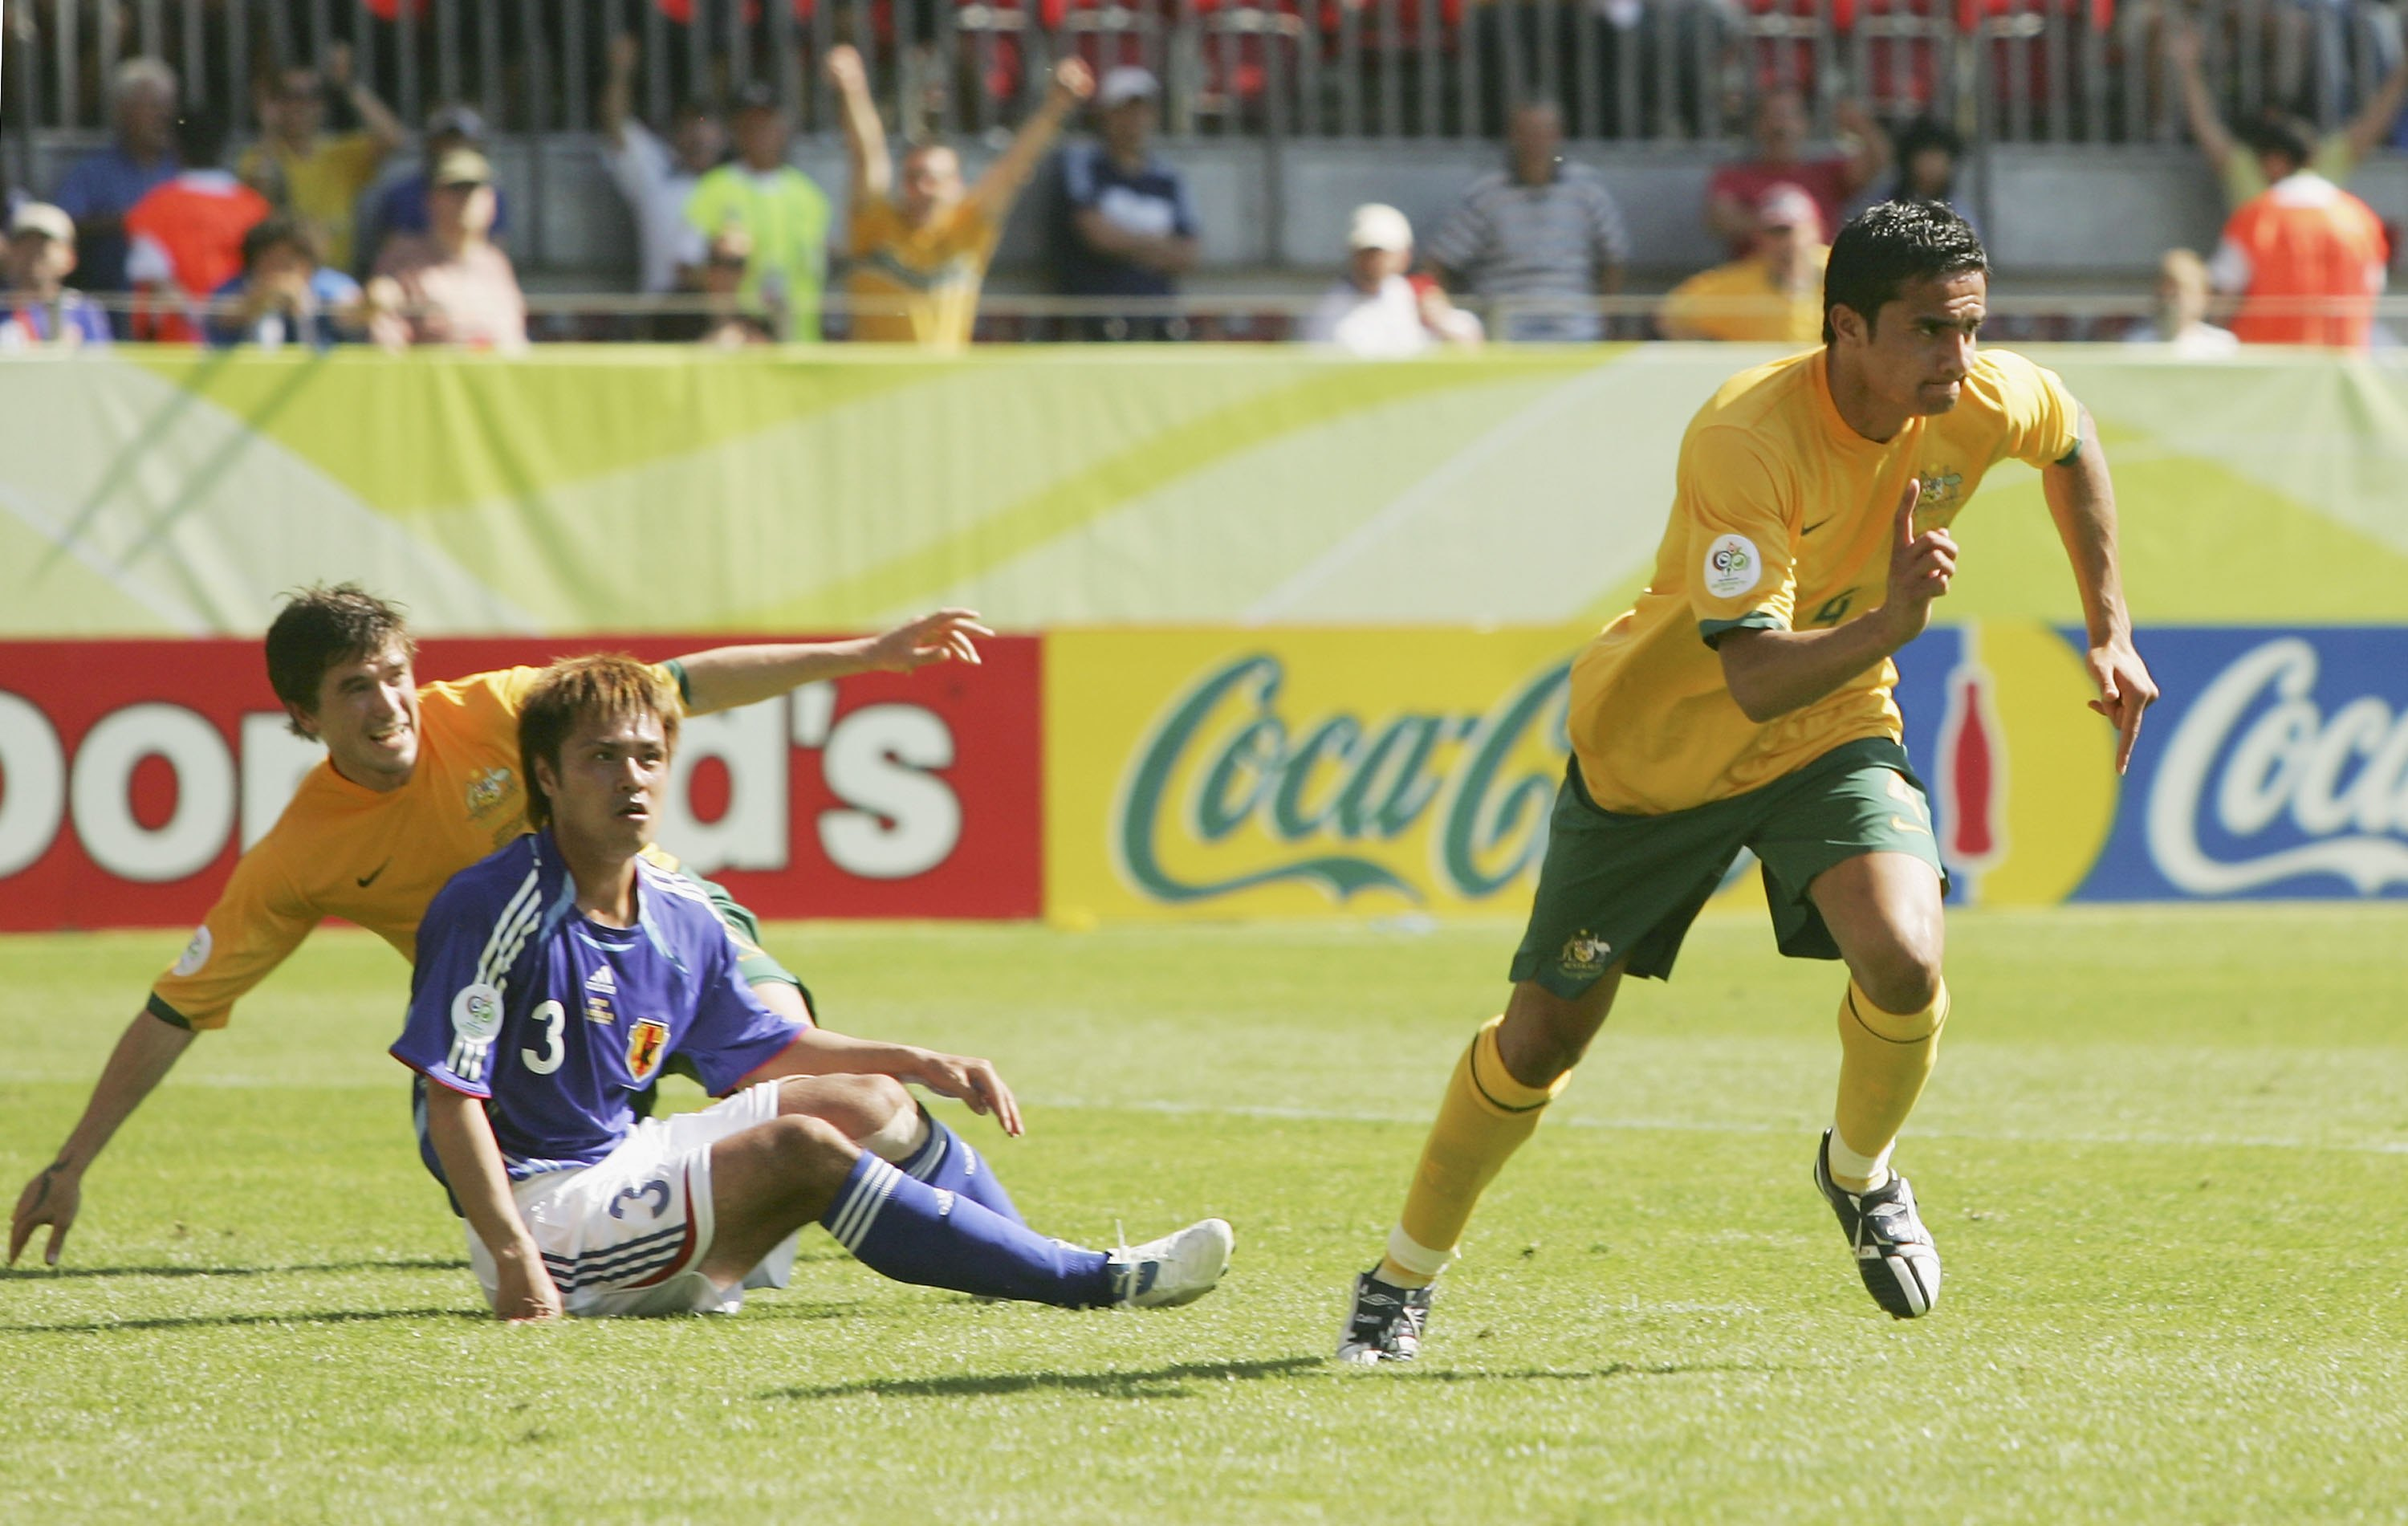 Tim Cahill celebrates scoring against Japan in 2006